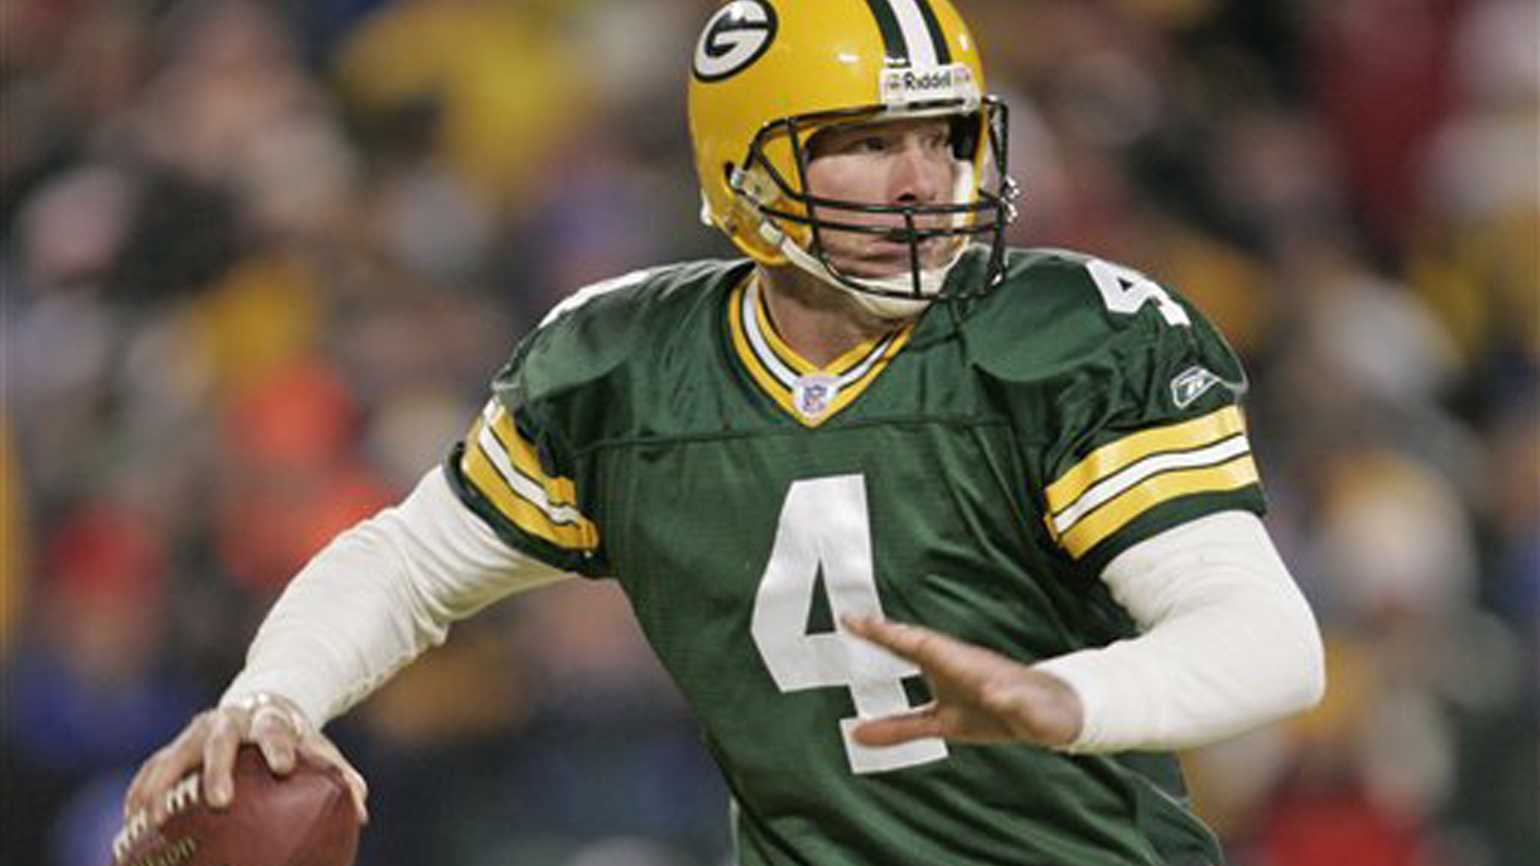 The quarterback of the Green Bay Packers, Brett Favre in action.